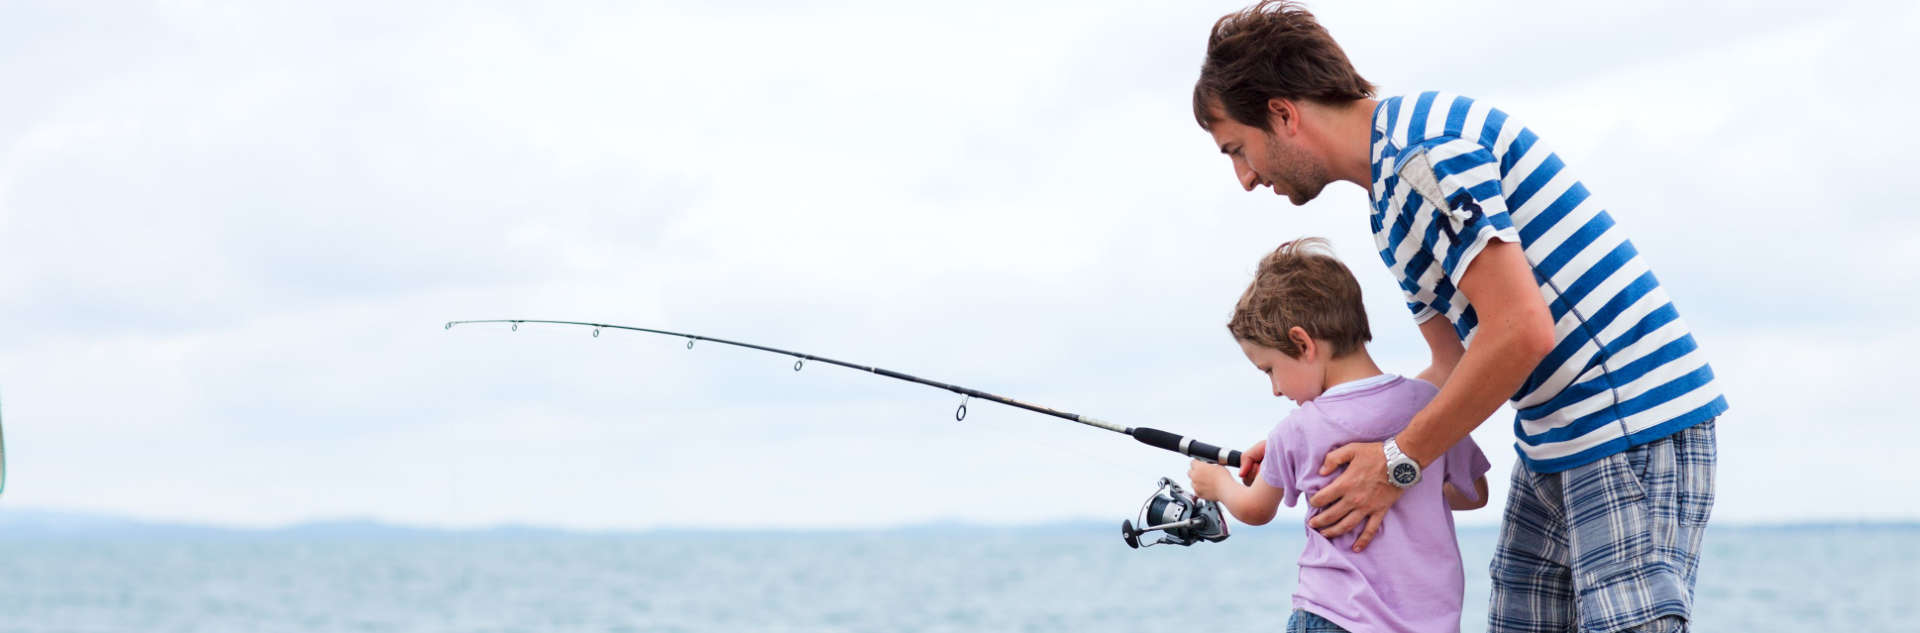 father and son while fishing at the sea